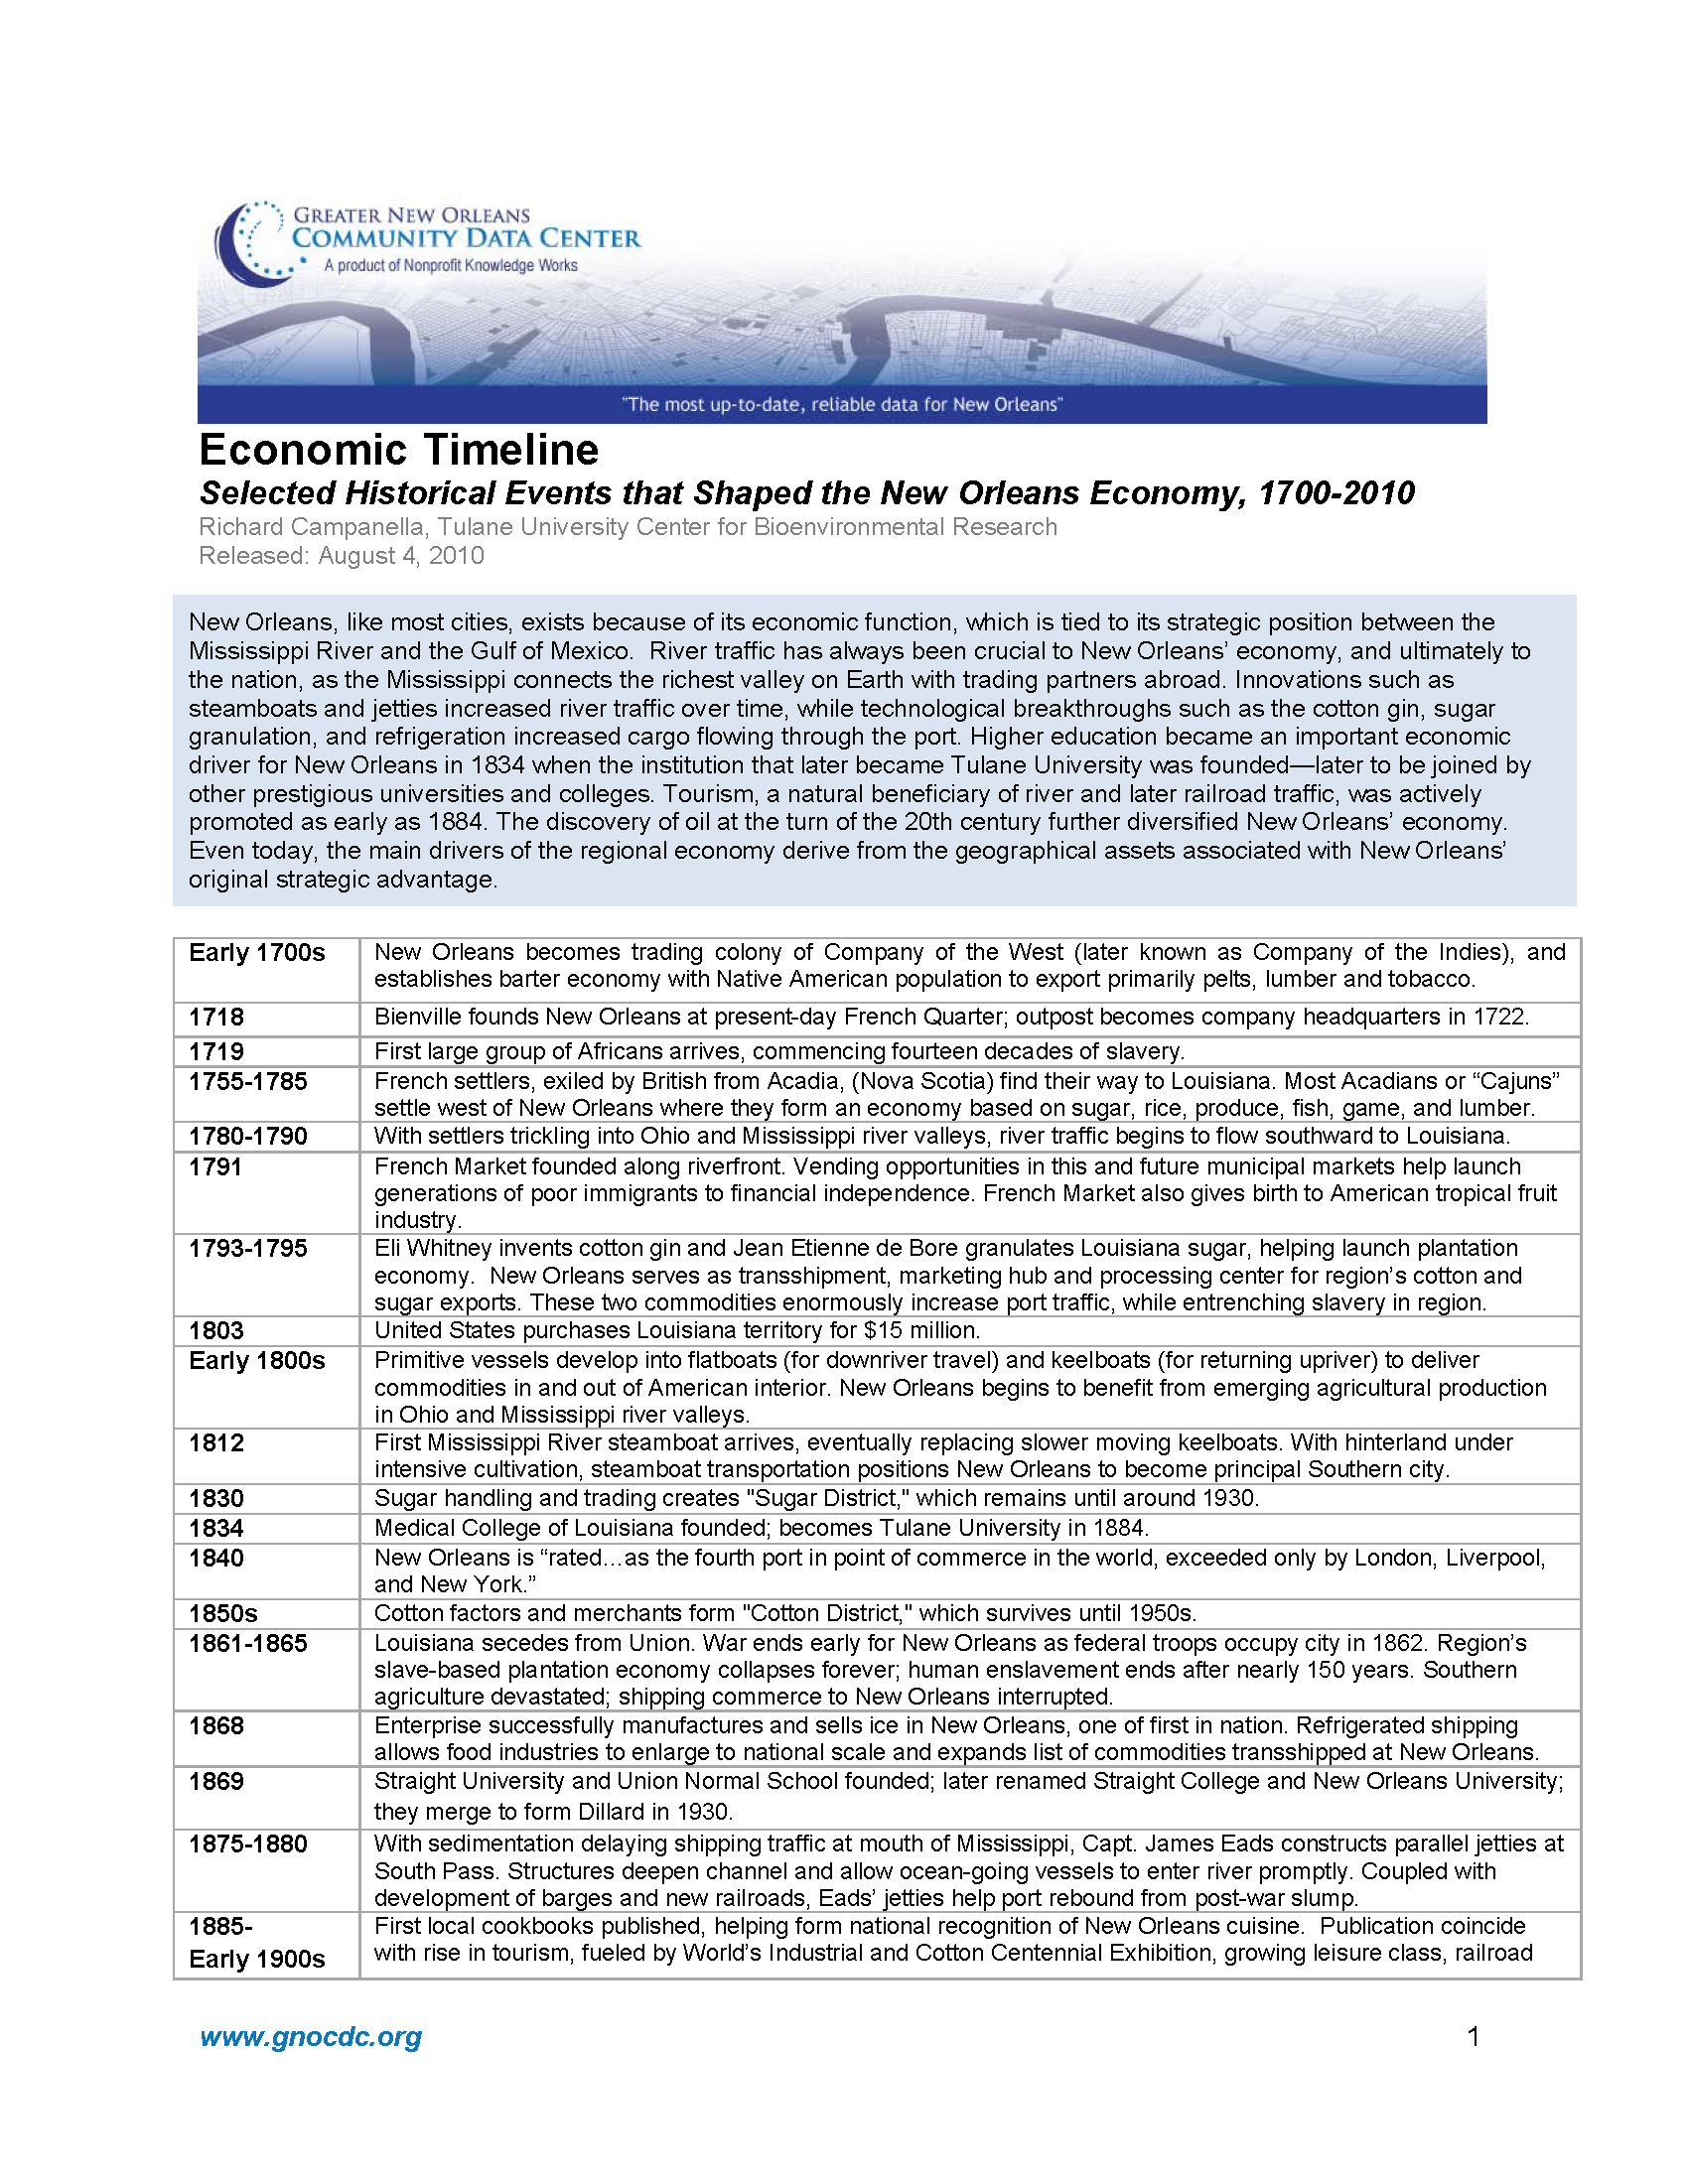 Economic Timeline: Selected Historical Events that Shaped the New Orleans Economy, 1700–2010